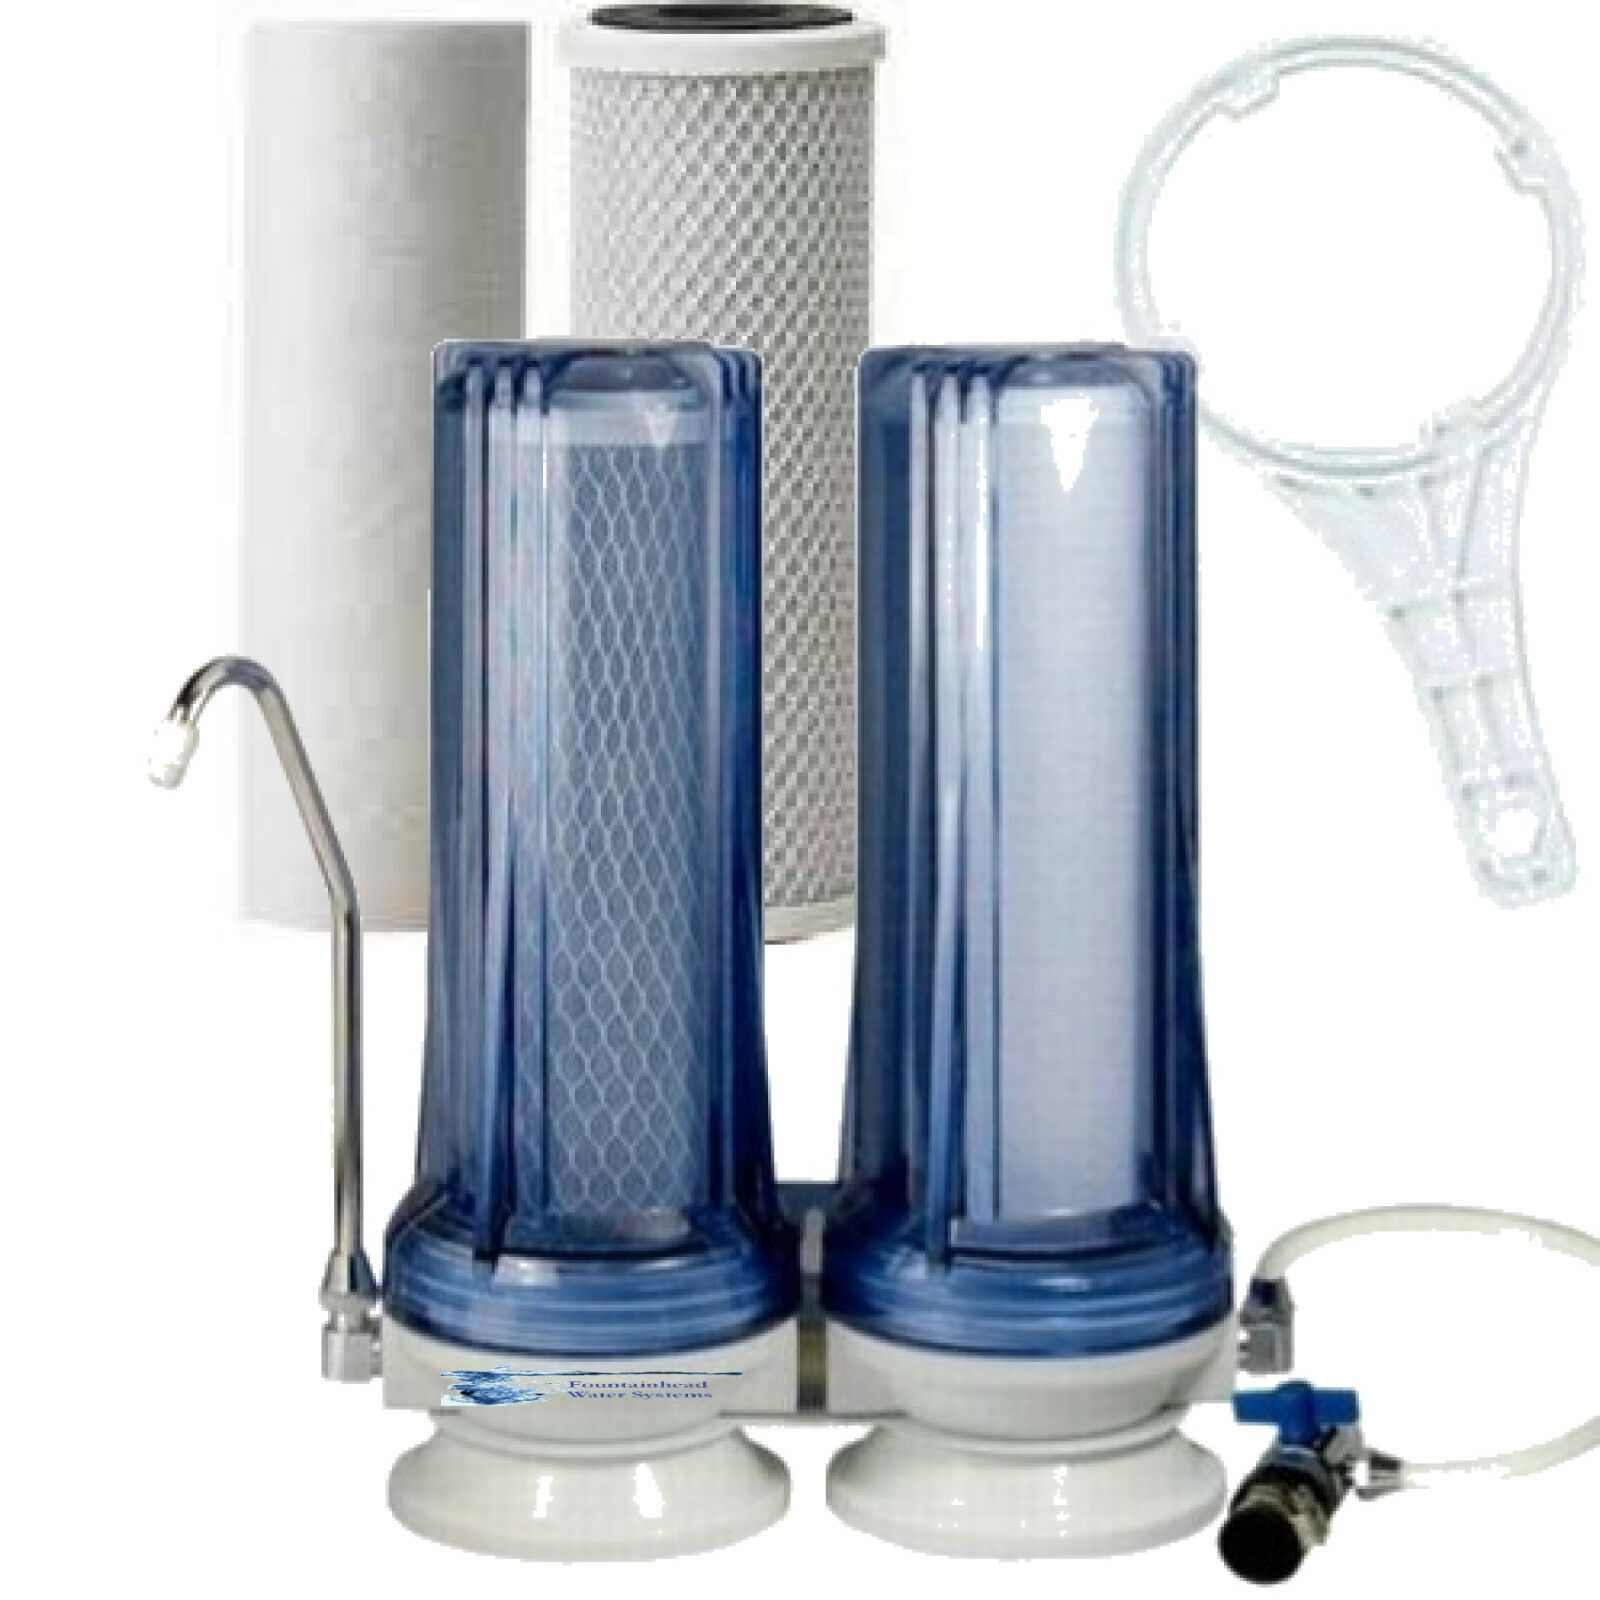 FOUNTAINHEAD COUNTER TOP CLEAR COMPLETE WATER FILTER SYSTEM  FAUCET ADAPTER